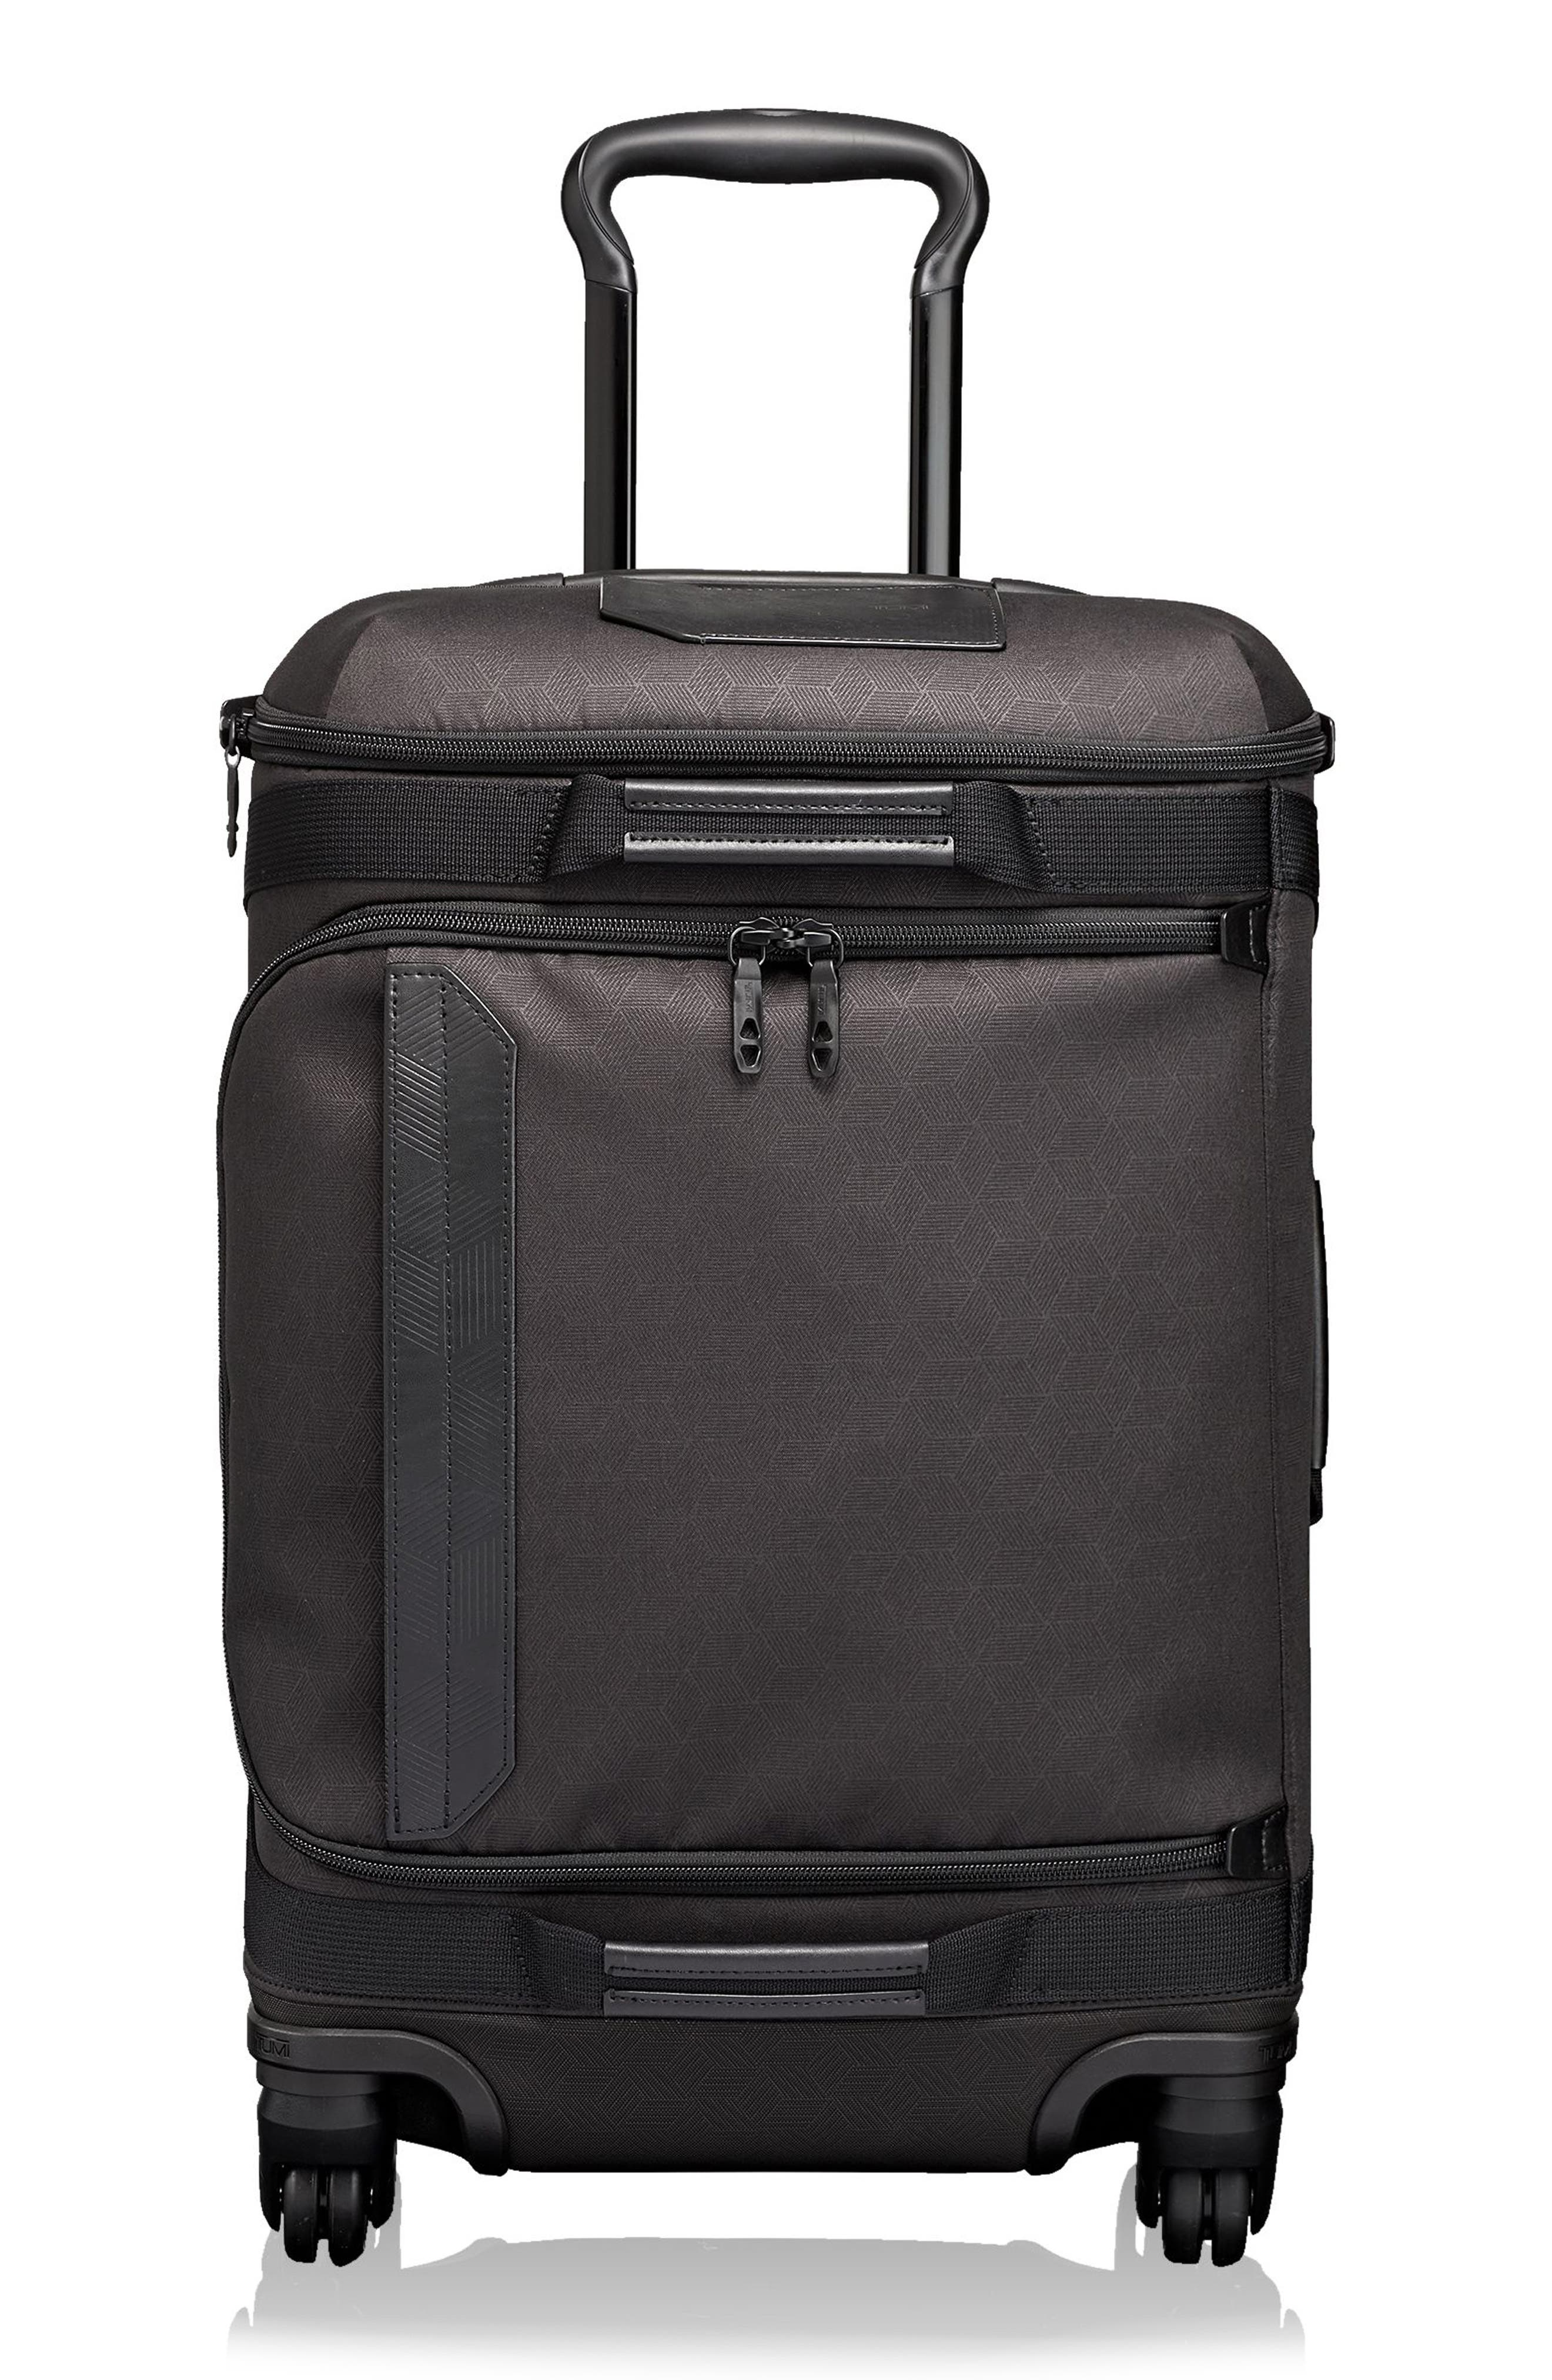 TUMI Sierra Tahoe International Expandable 22-Inch Carry On